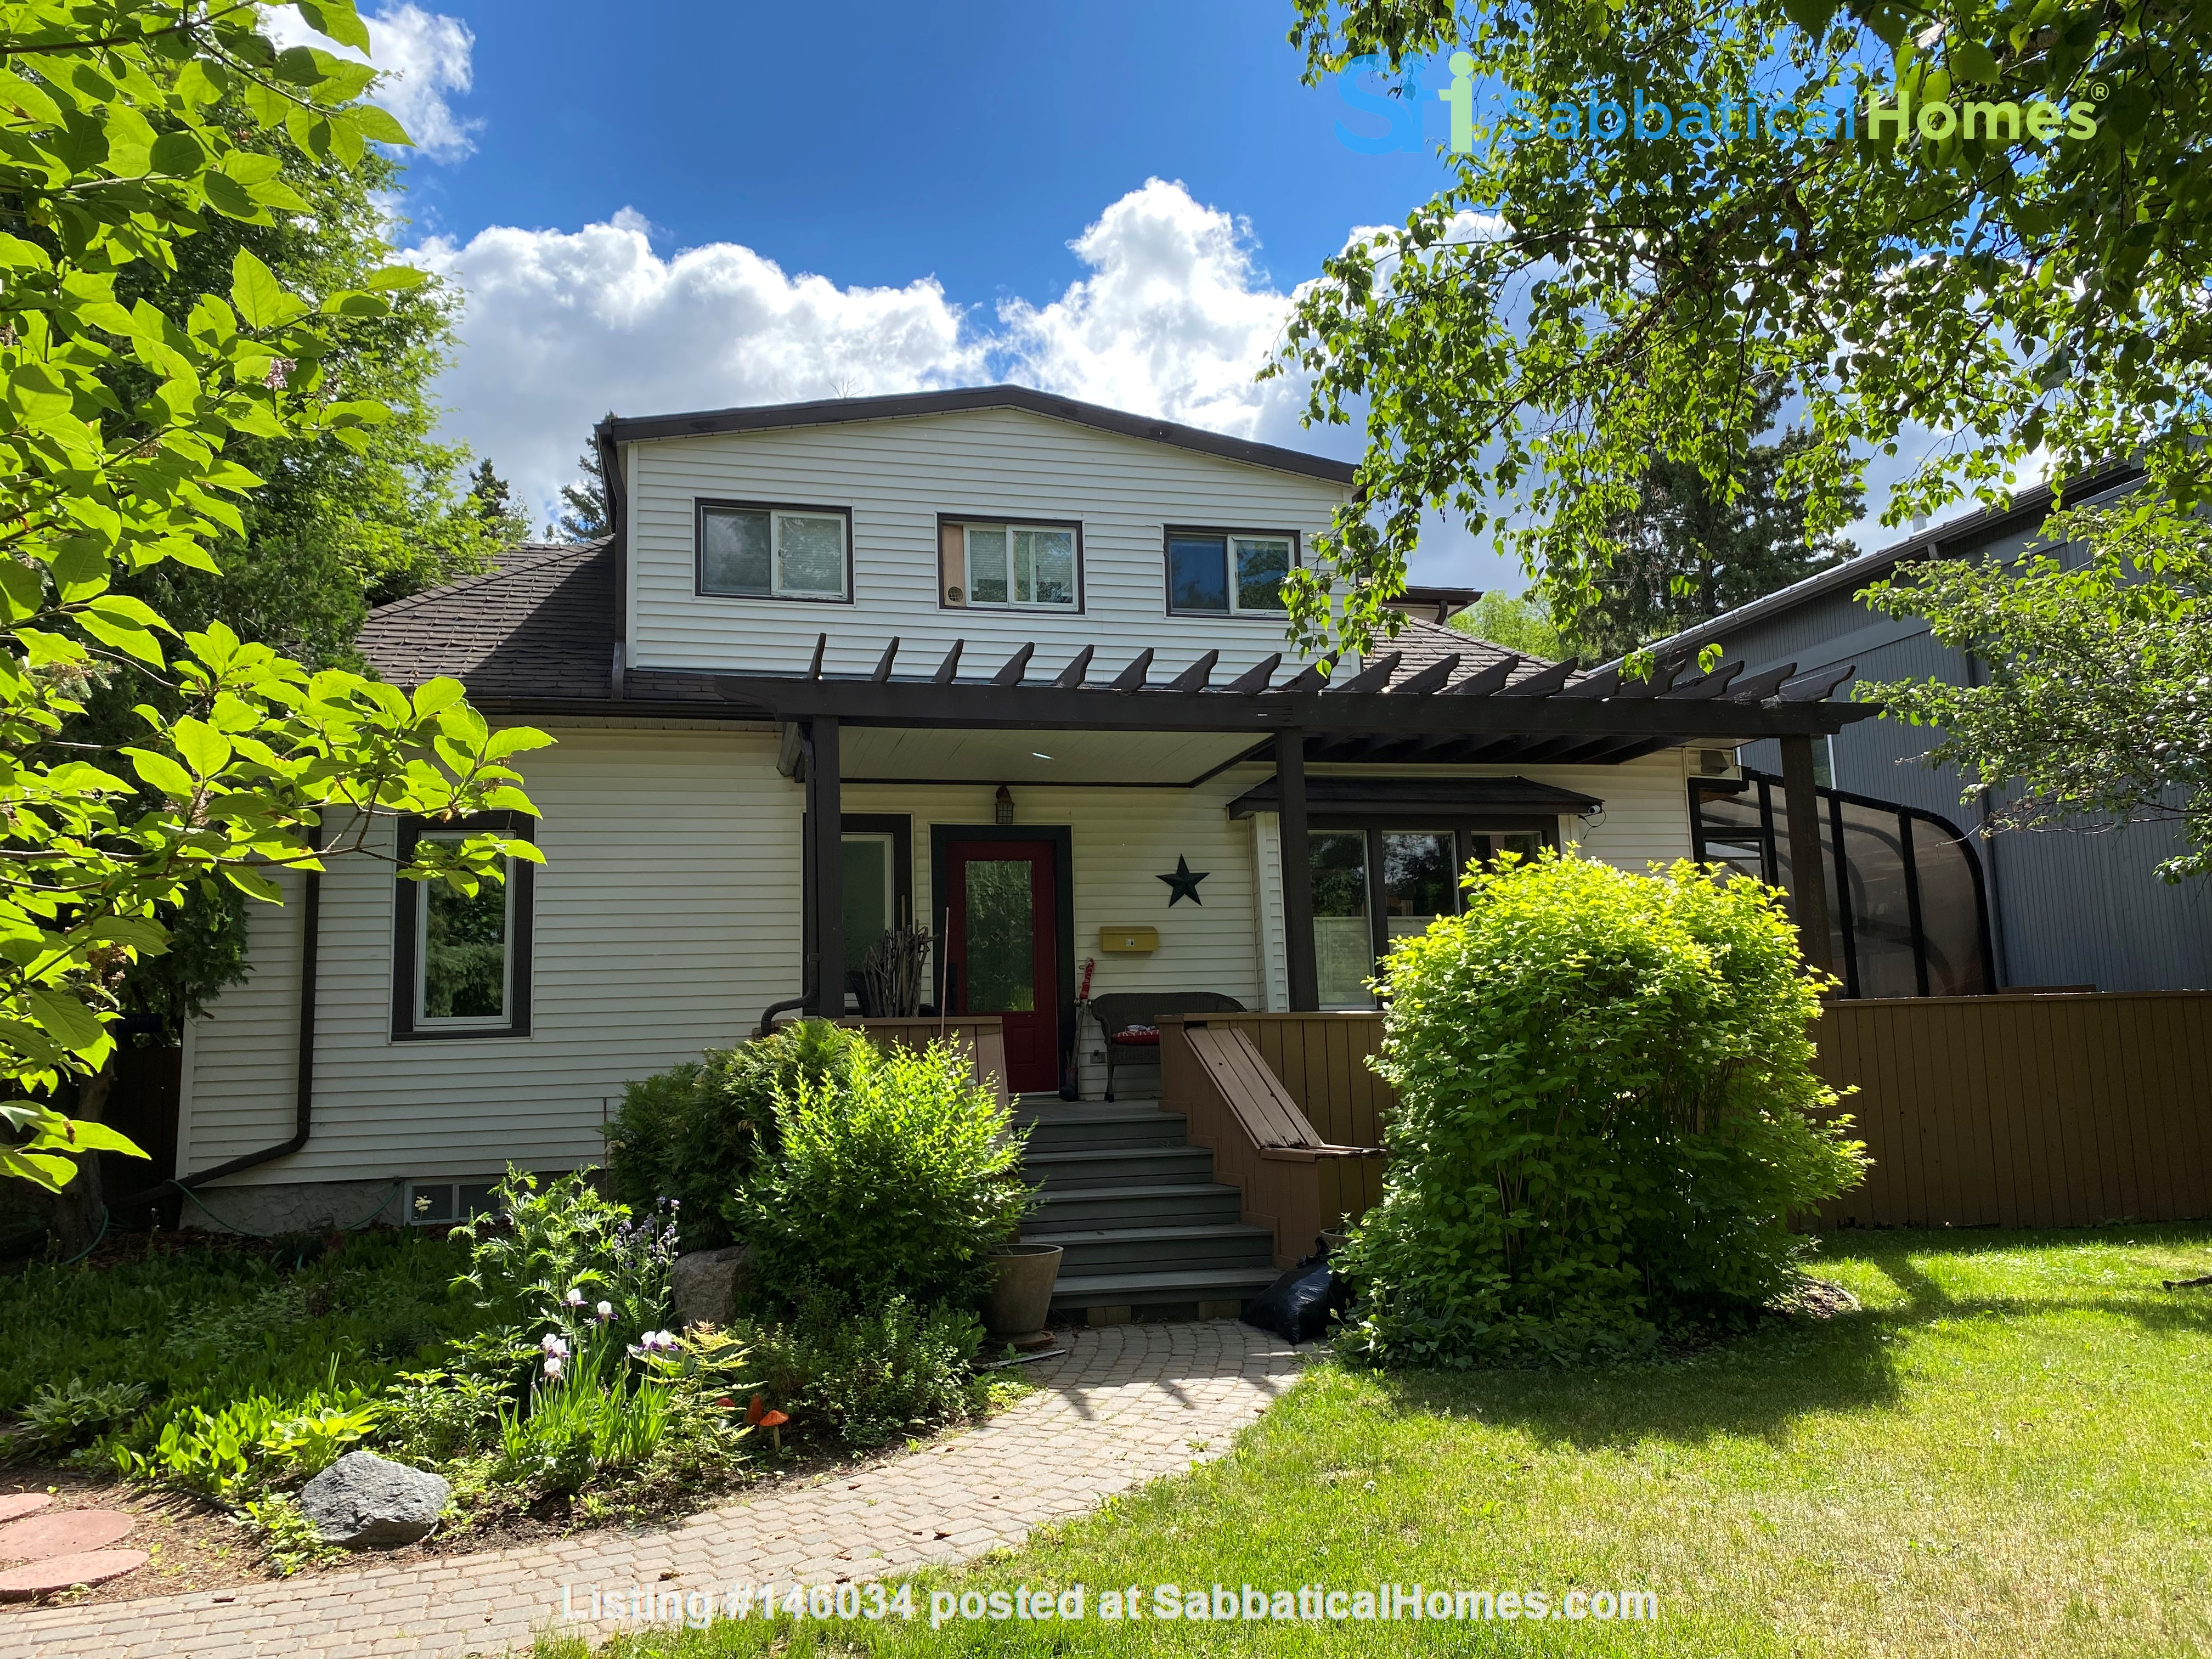 4 Bdrm Home in Belgravia, U of A area, across from River Valley Home Rental in Edmonton 0